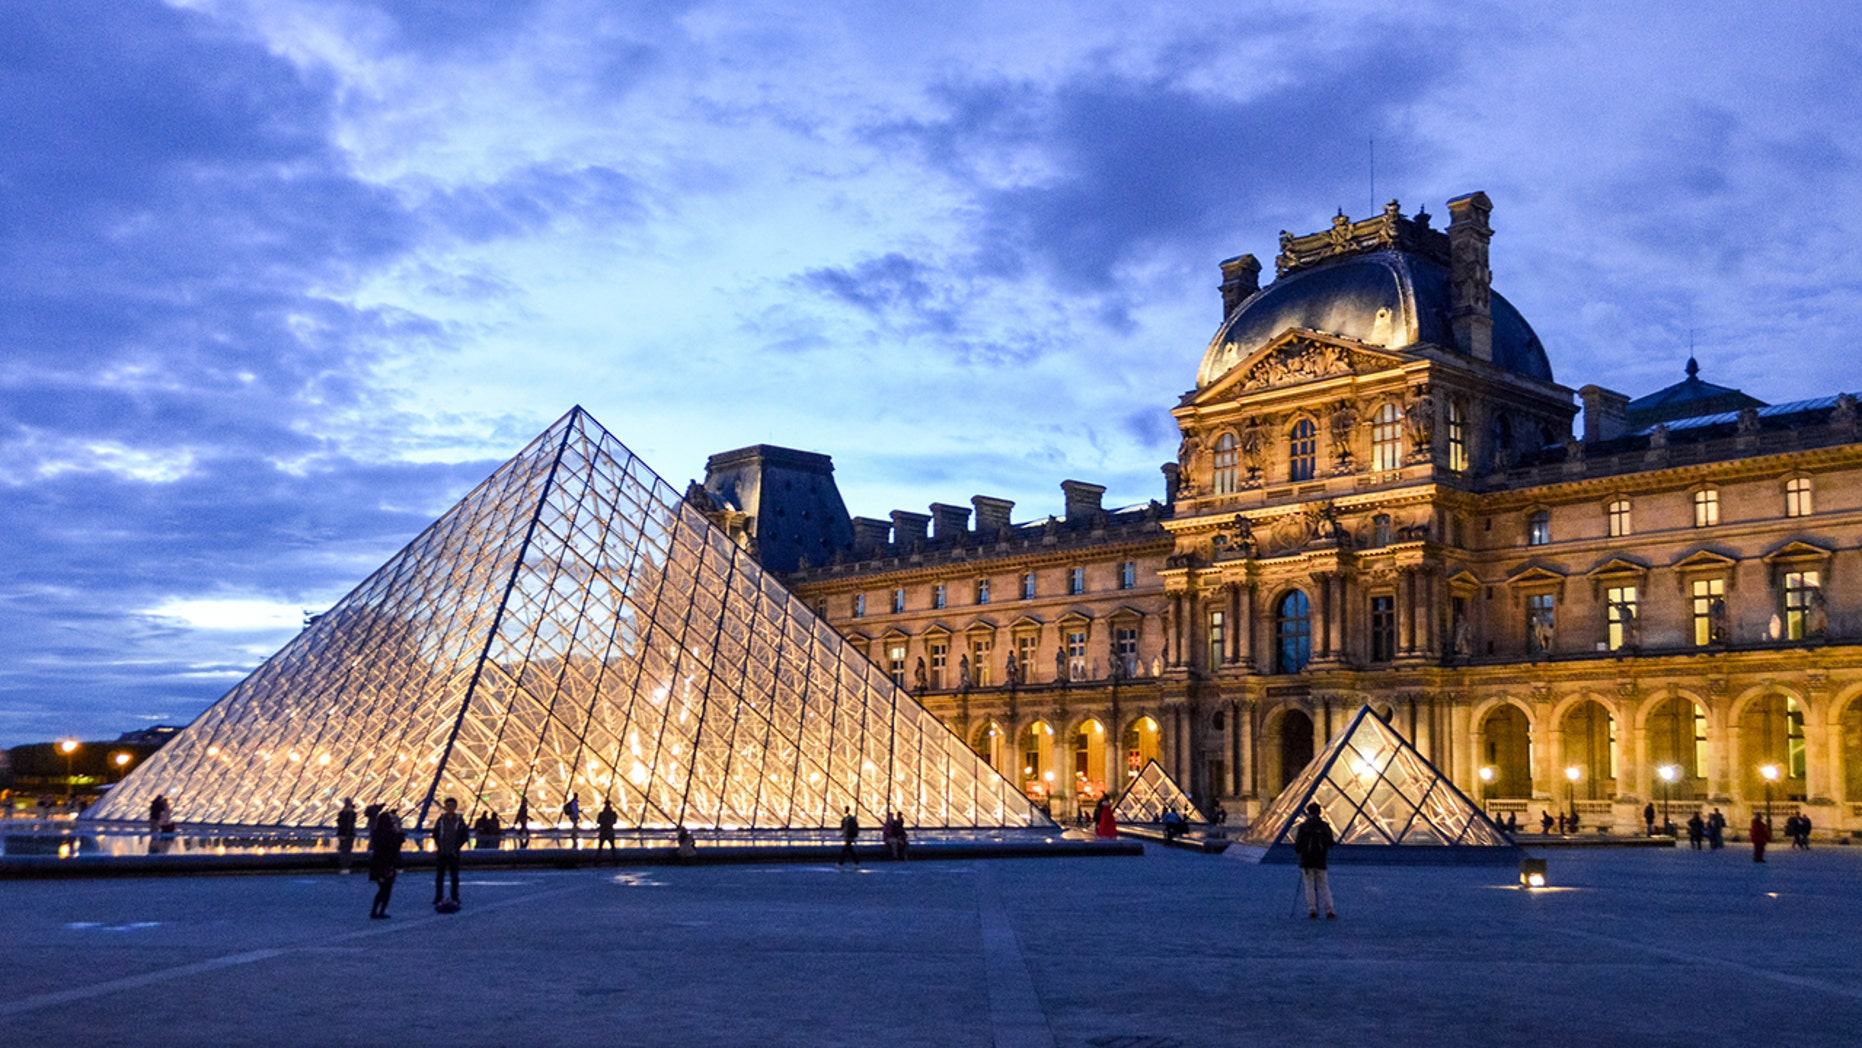 Winners of a new Airbnb contest will be able to spend the night in the Louvre Museum in Paris, France. (iStock)